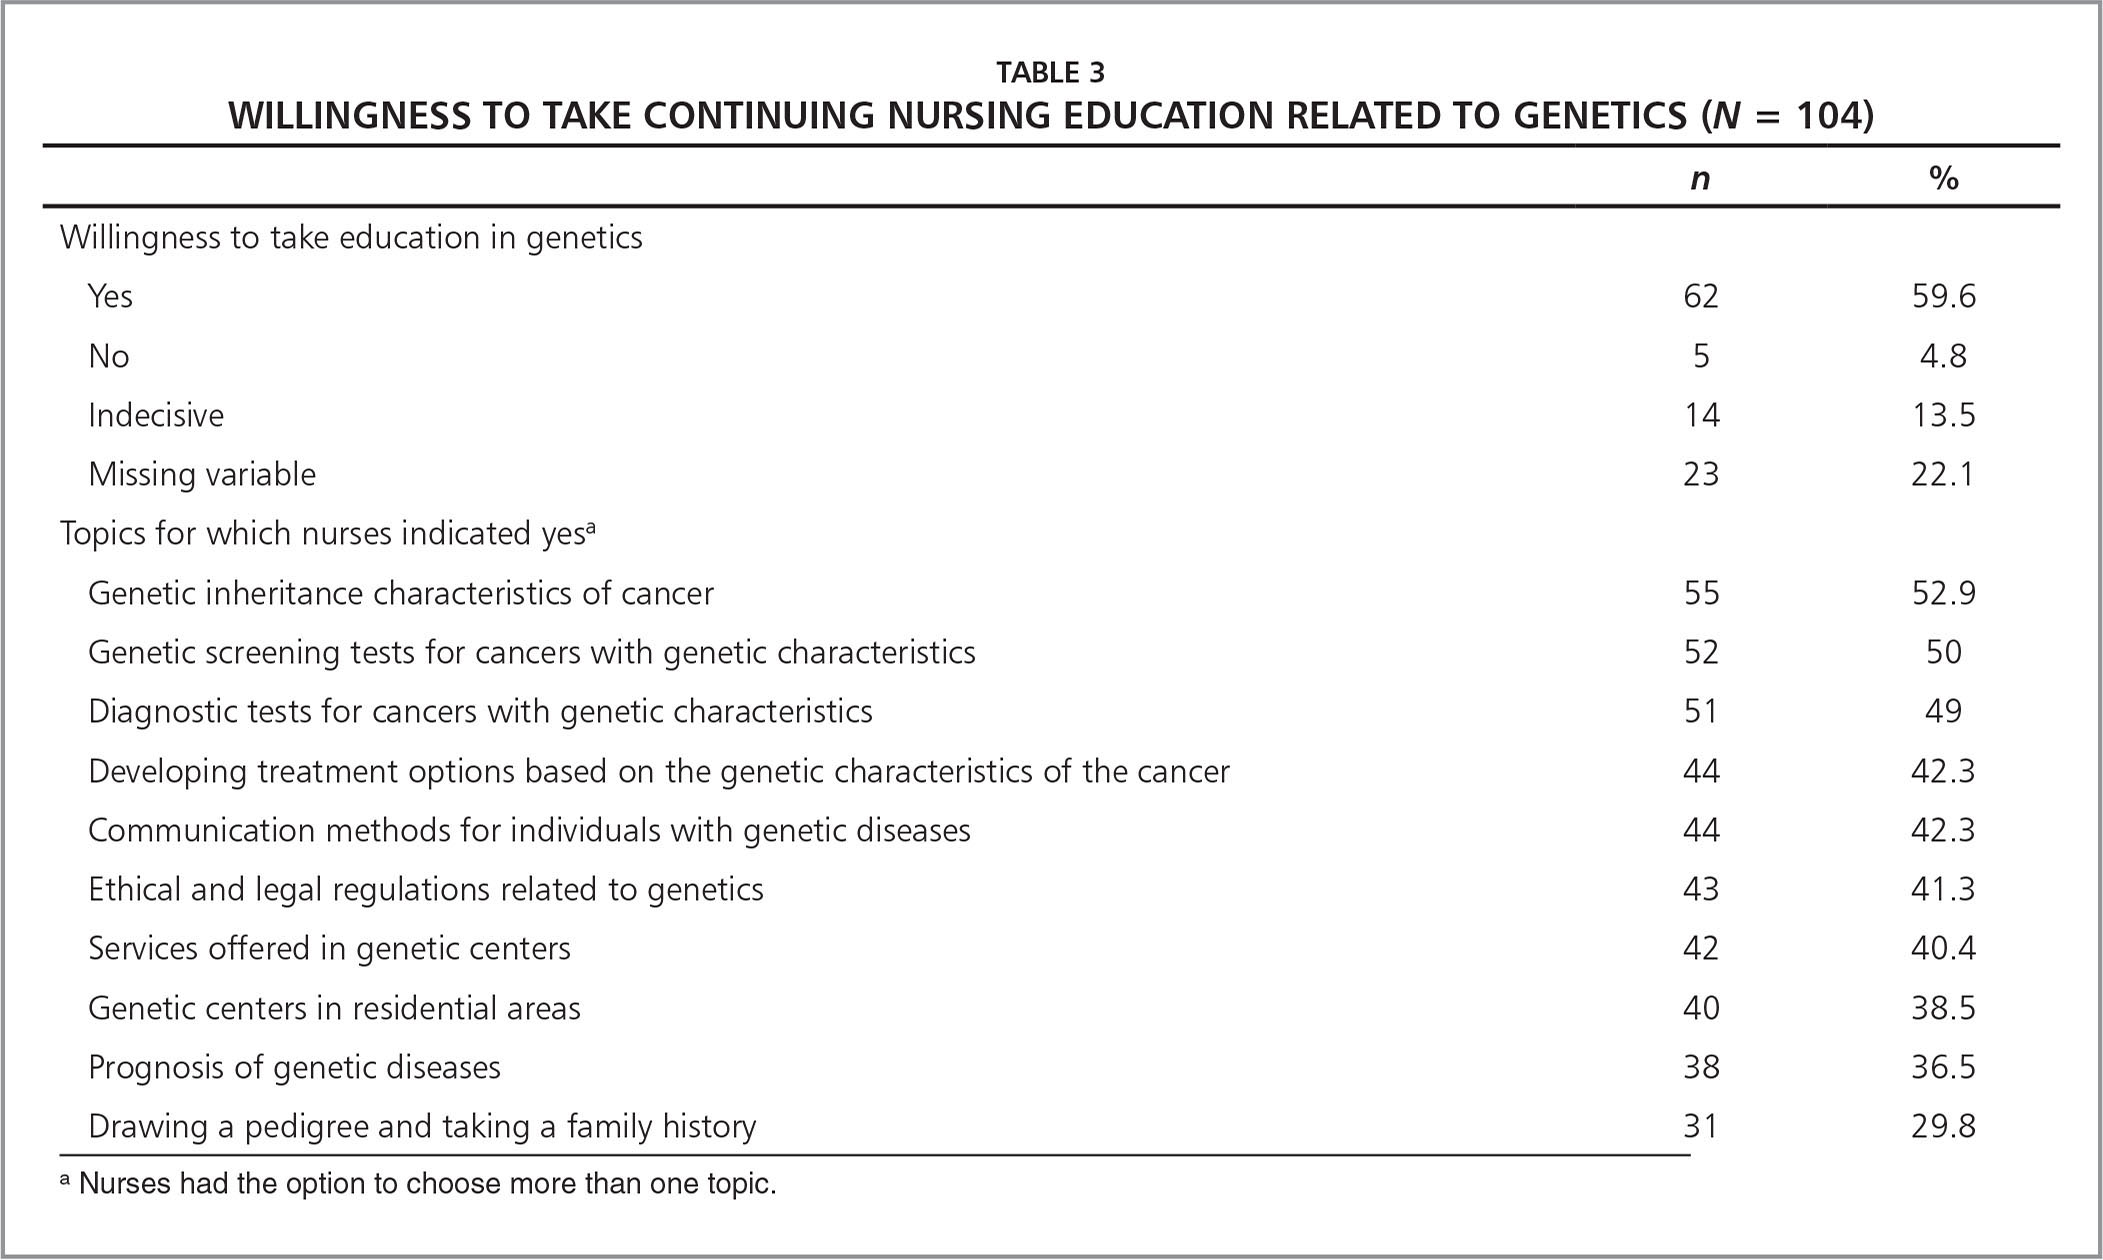 Willingness to Take Continuing Nursing Education Related to Genetics (N = 104)